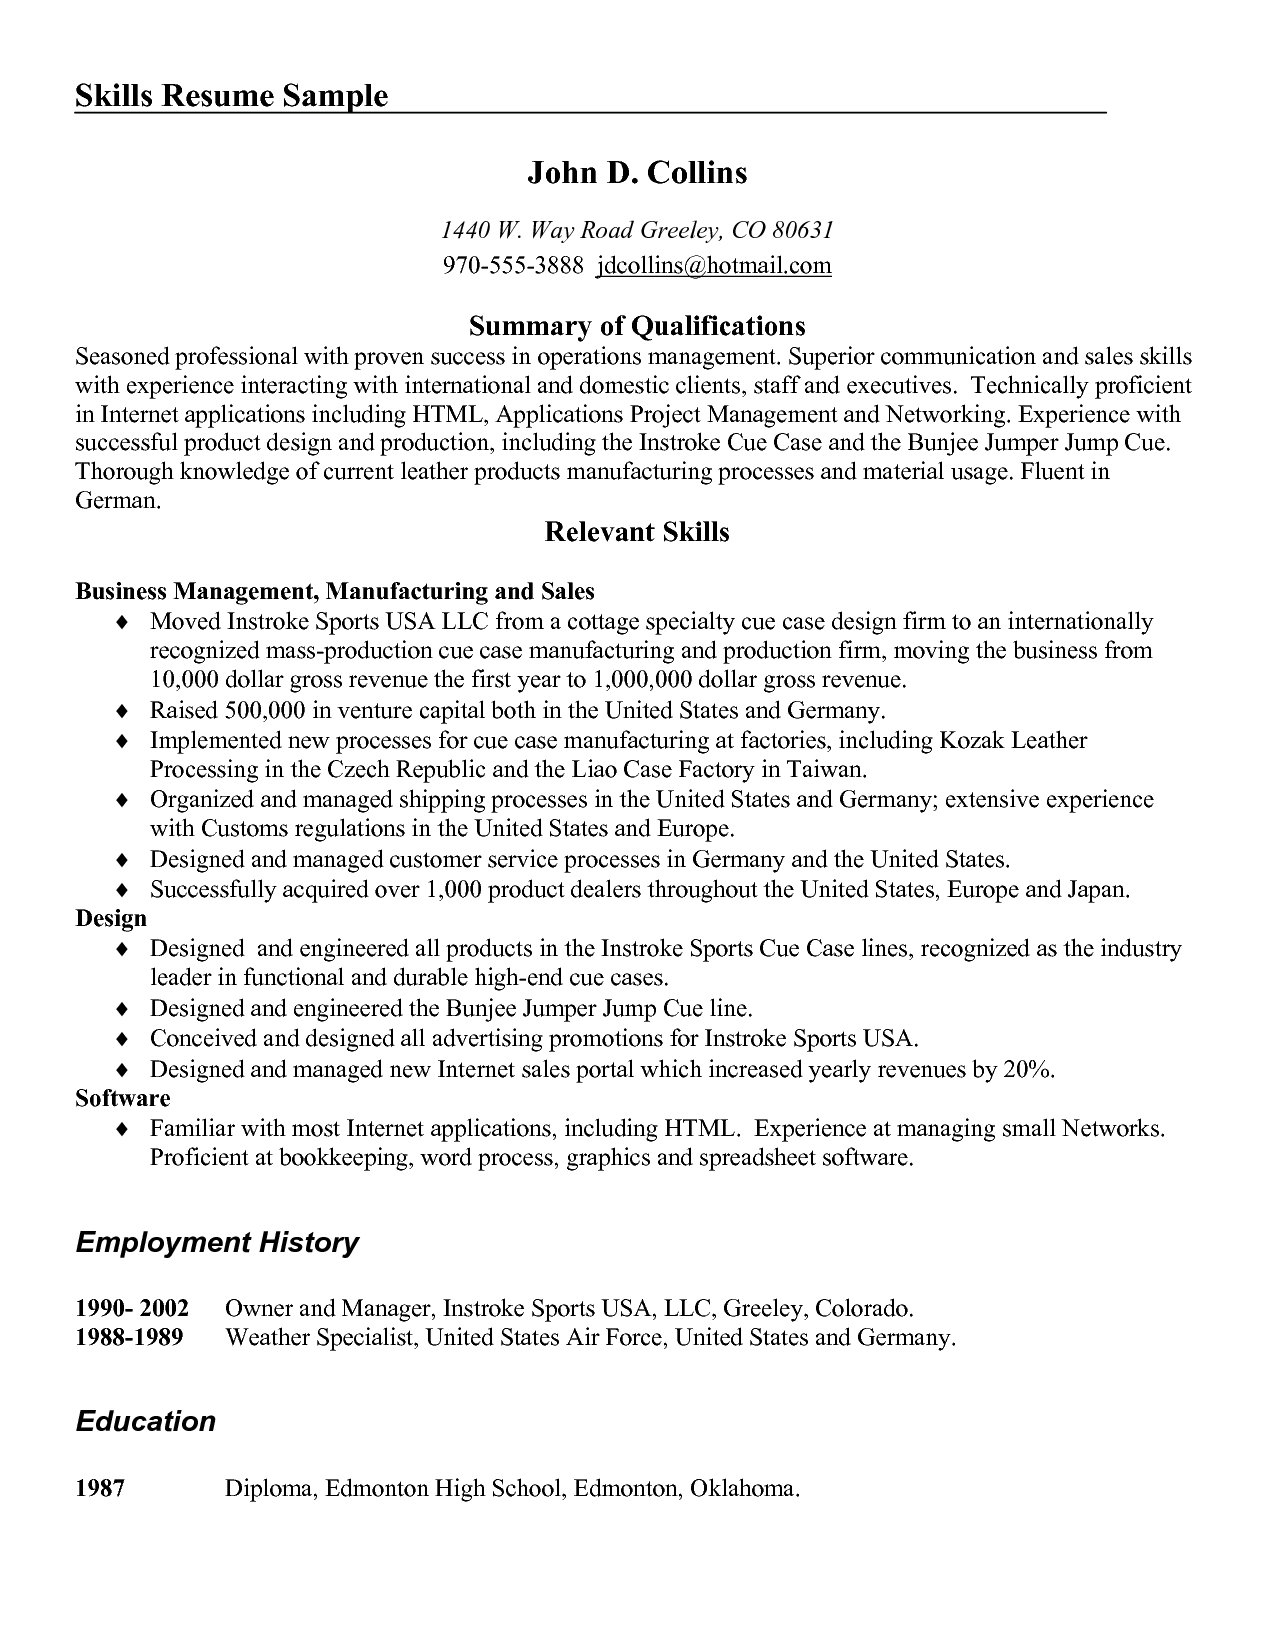 Skills Resume Template Image Result For Skill Based Resume Examples  Business